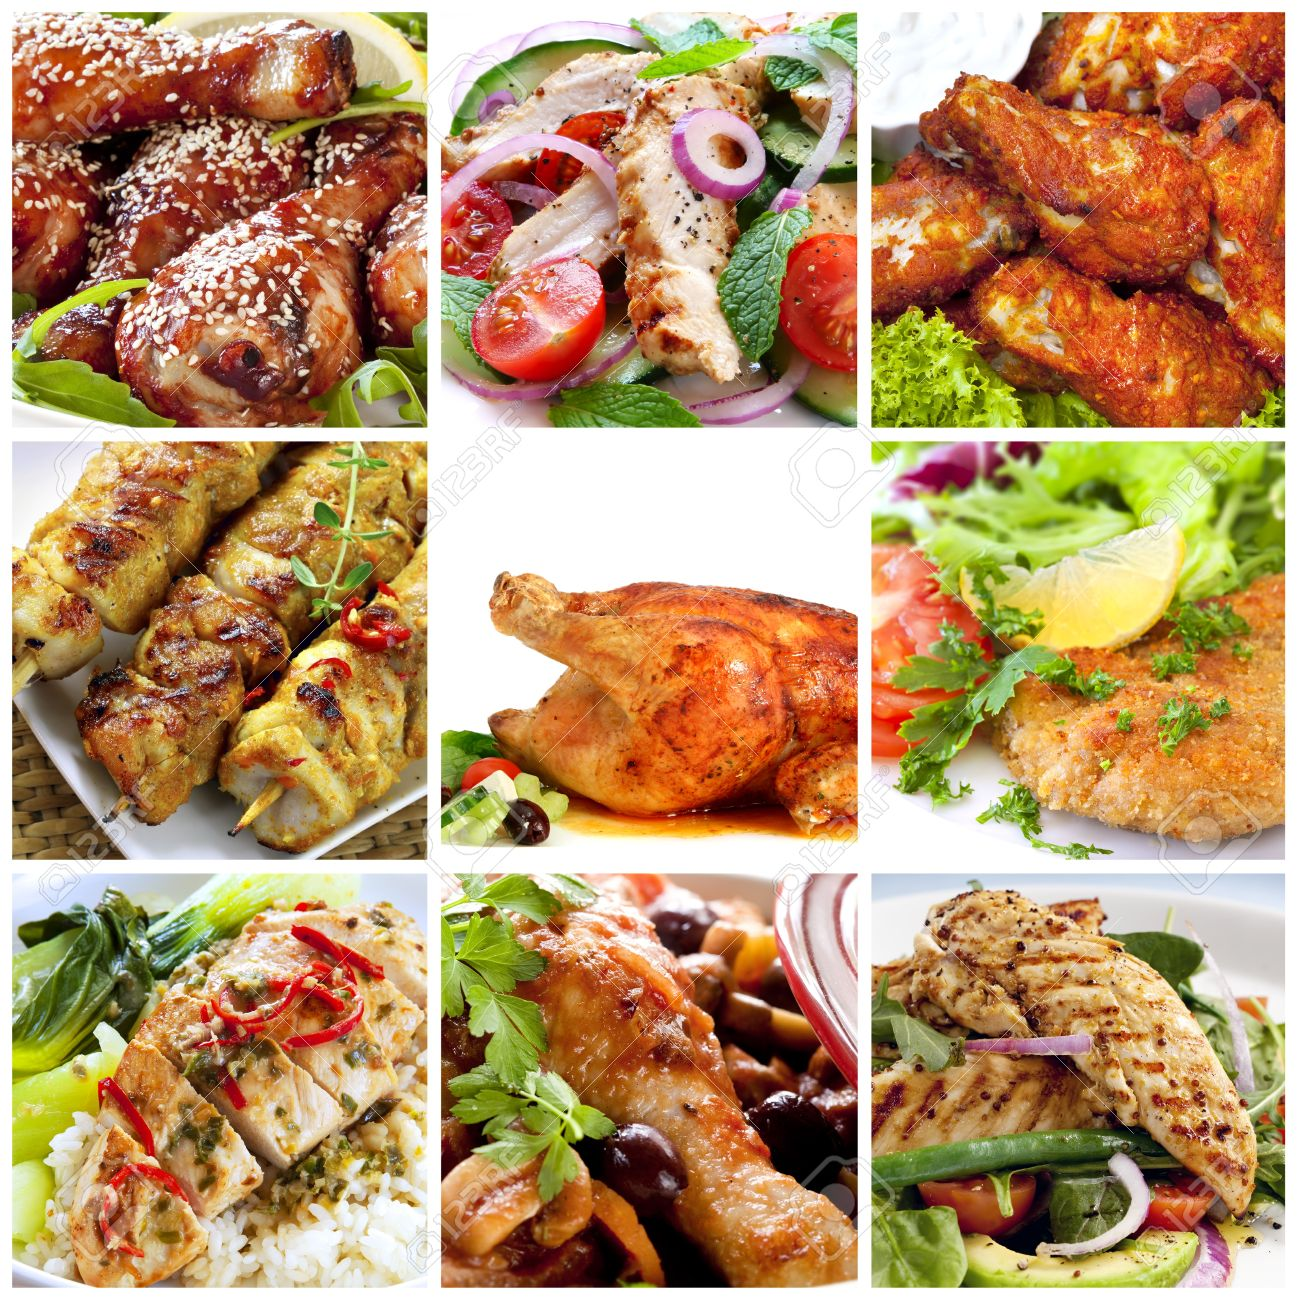 Collage Of Chicken Dishes Includes Honey Soy Chicken Drumsticks Salads Buffalo Wings